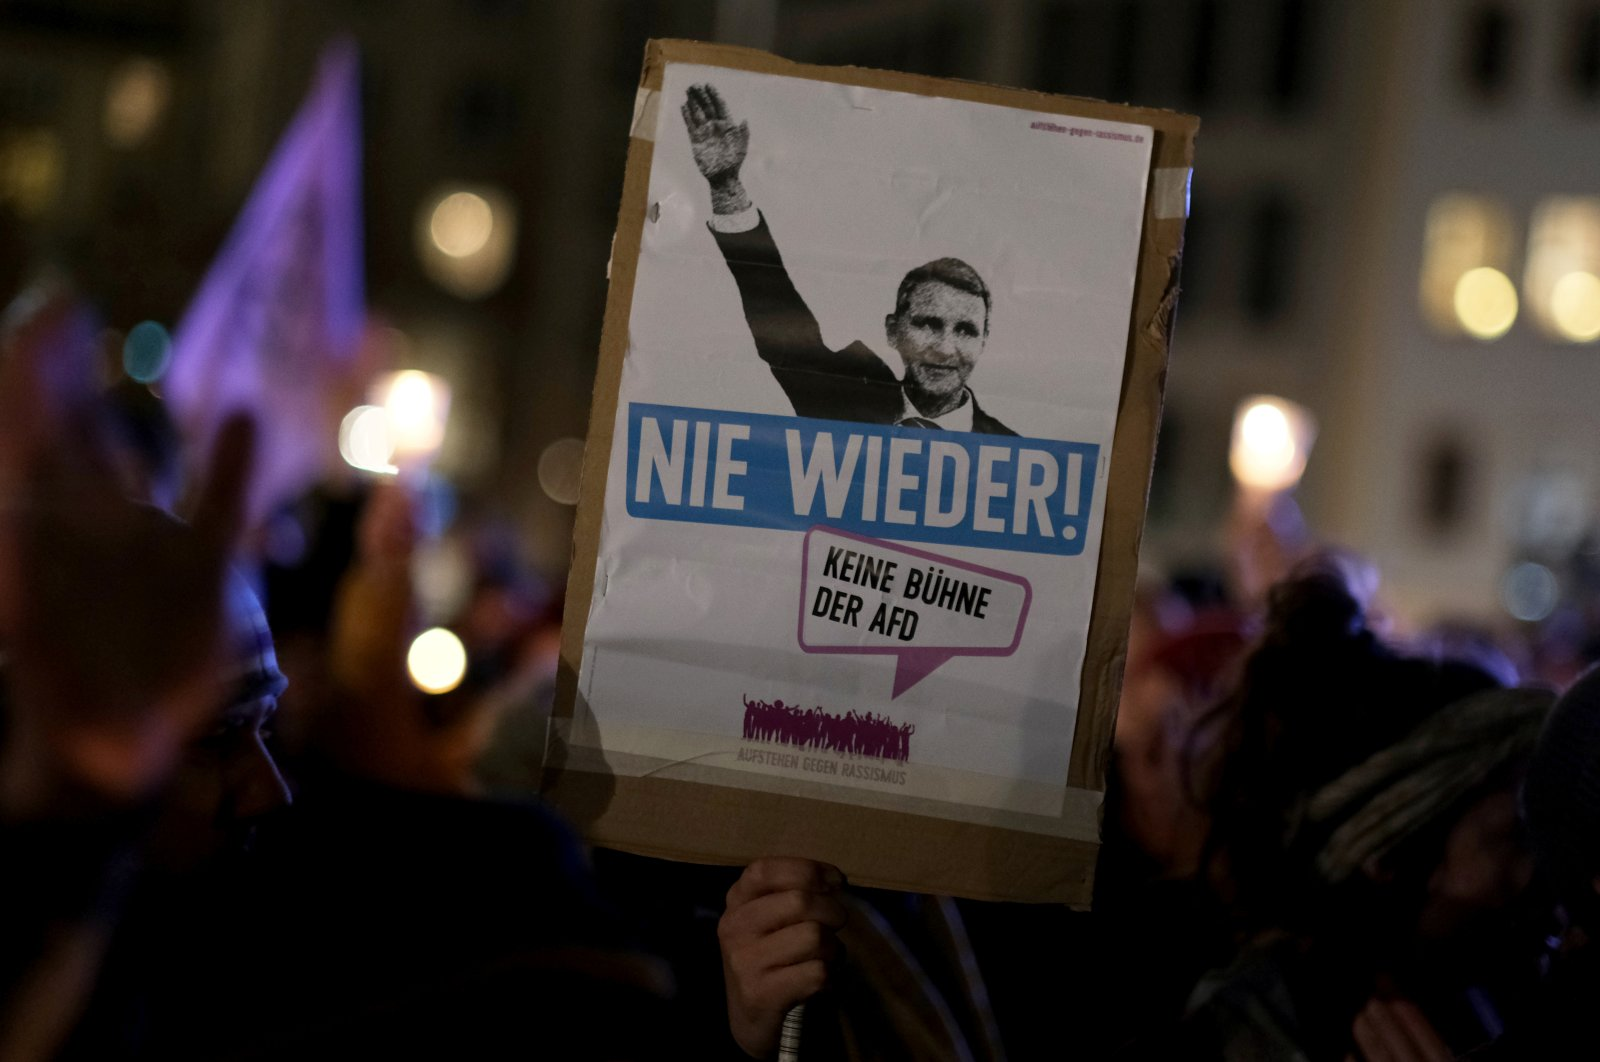 """People attend a demonstration as supporters of the right-wing anti-Islam movement Patriotic Europeans Against the Islamisation of the West (PEGIDA) stage a protest in Dresden, Germany, Feb. 17, 2020. The banner reads: """"Never again. No stage for the AfD."""" (Reuters Photo)"""